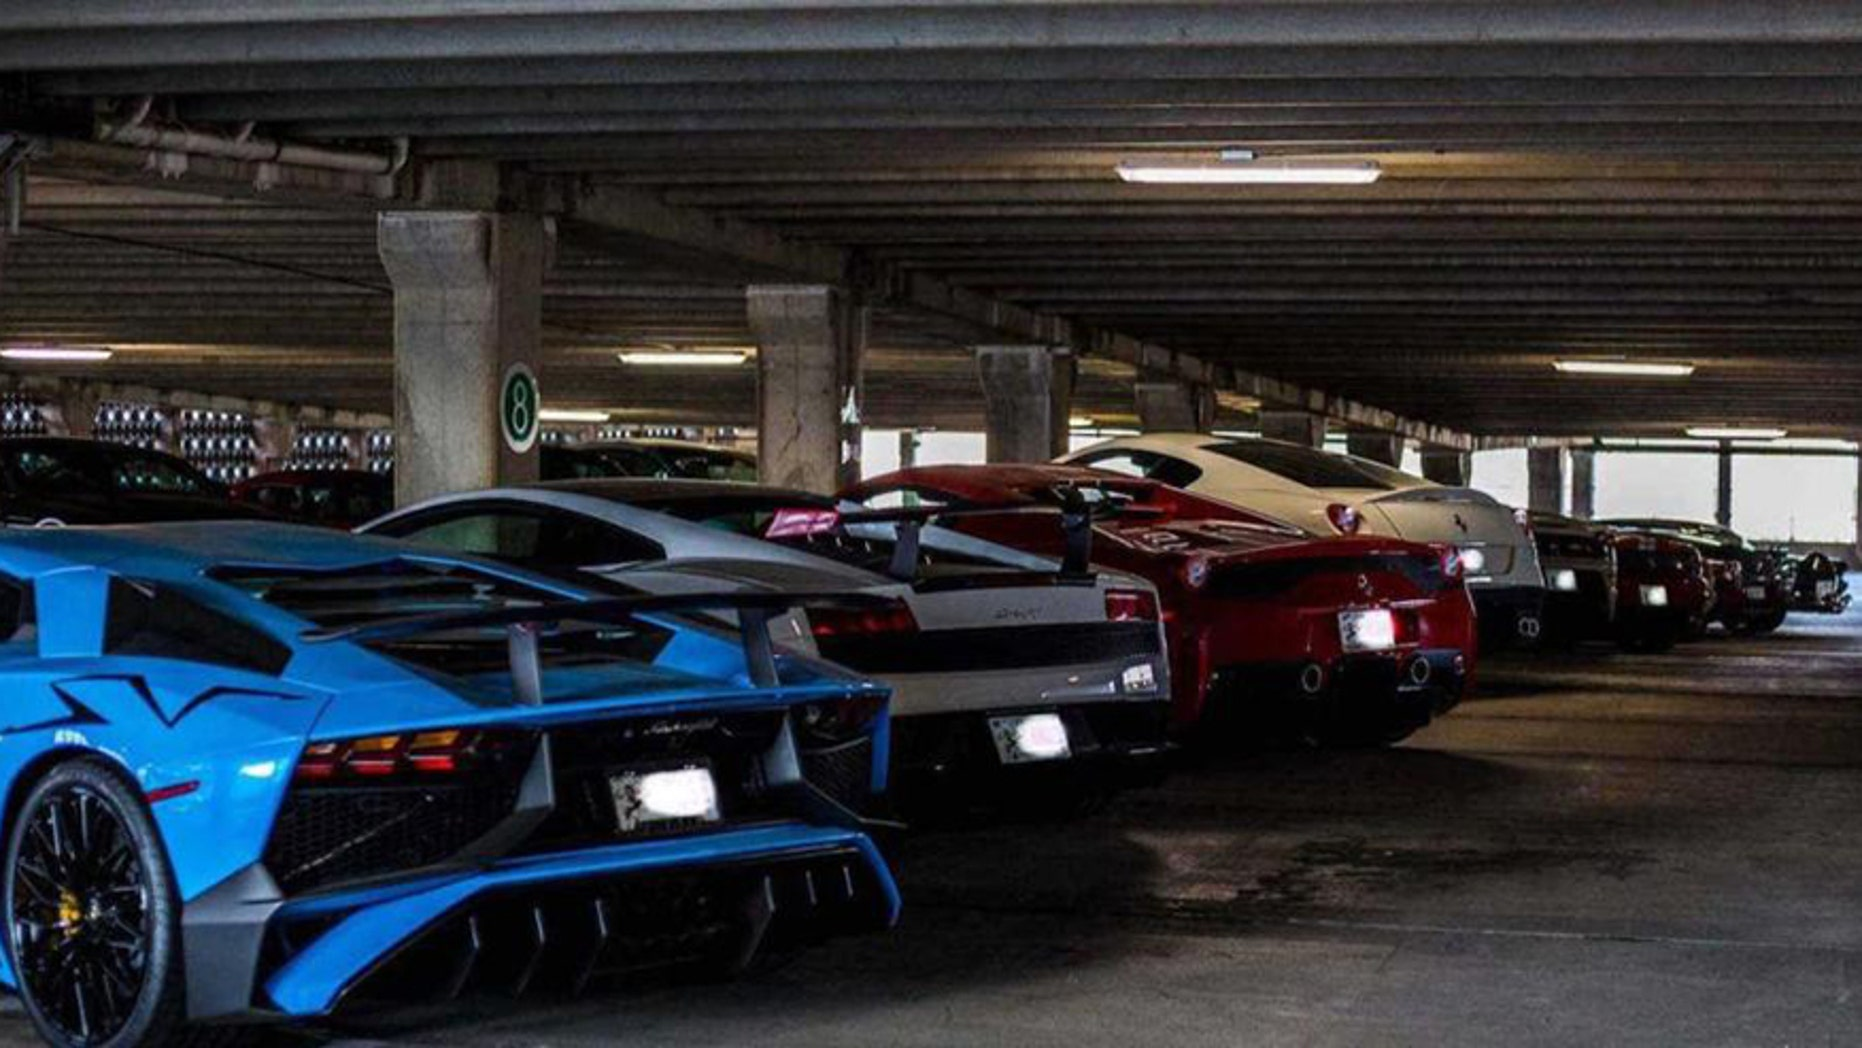 A garage is a good place to store a car collection, but a public garage?